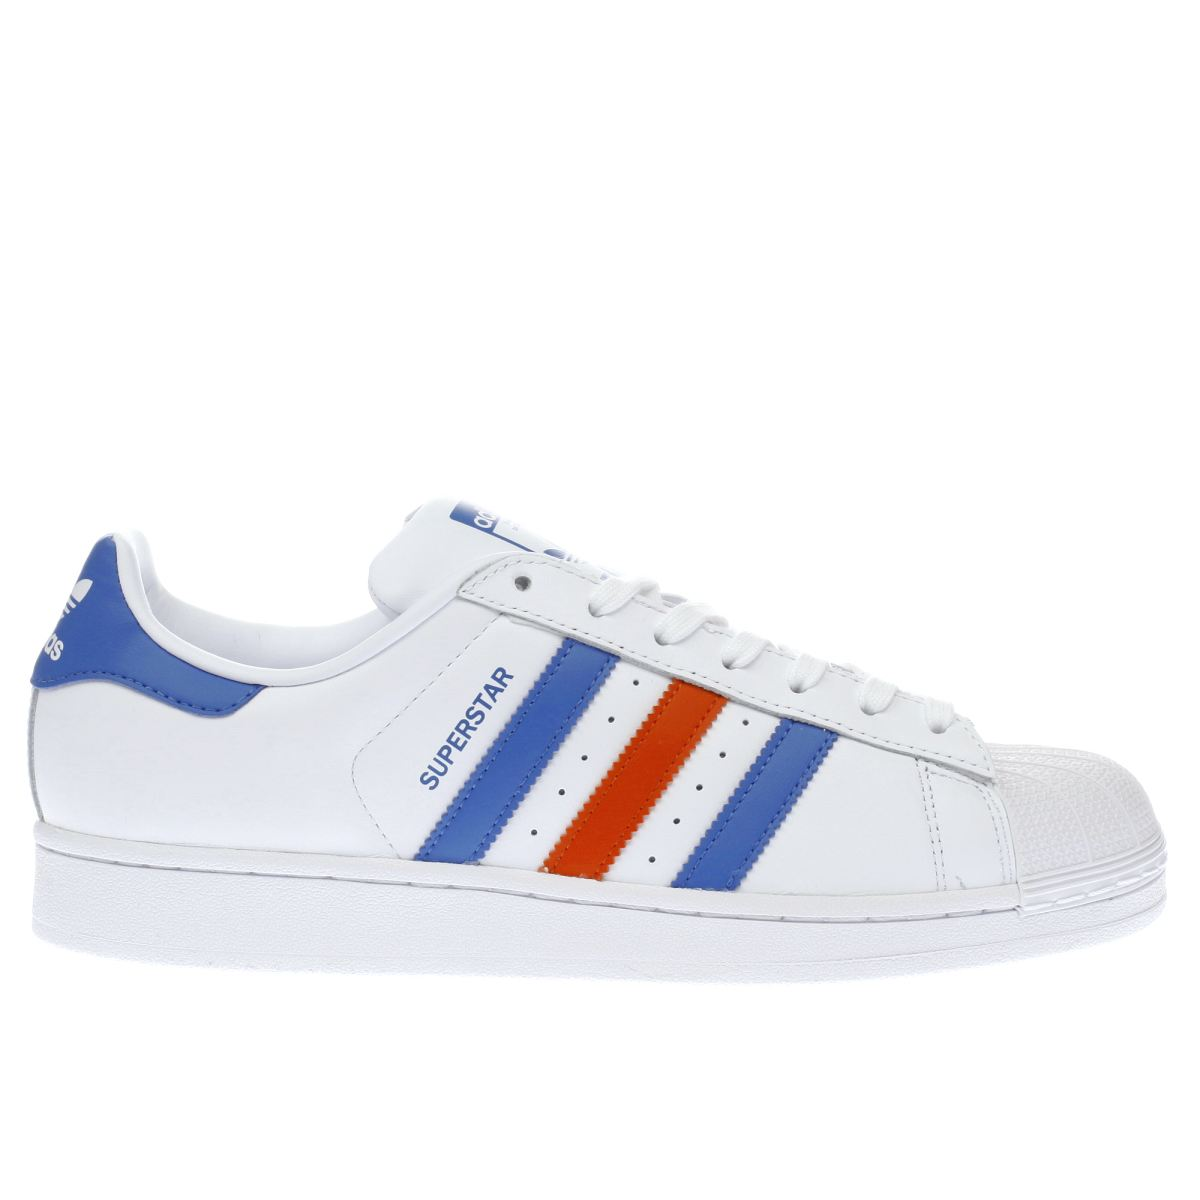 adidas white & blue superstar trainers